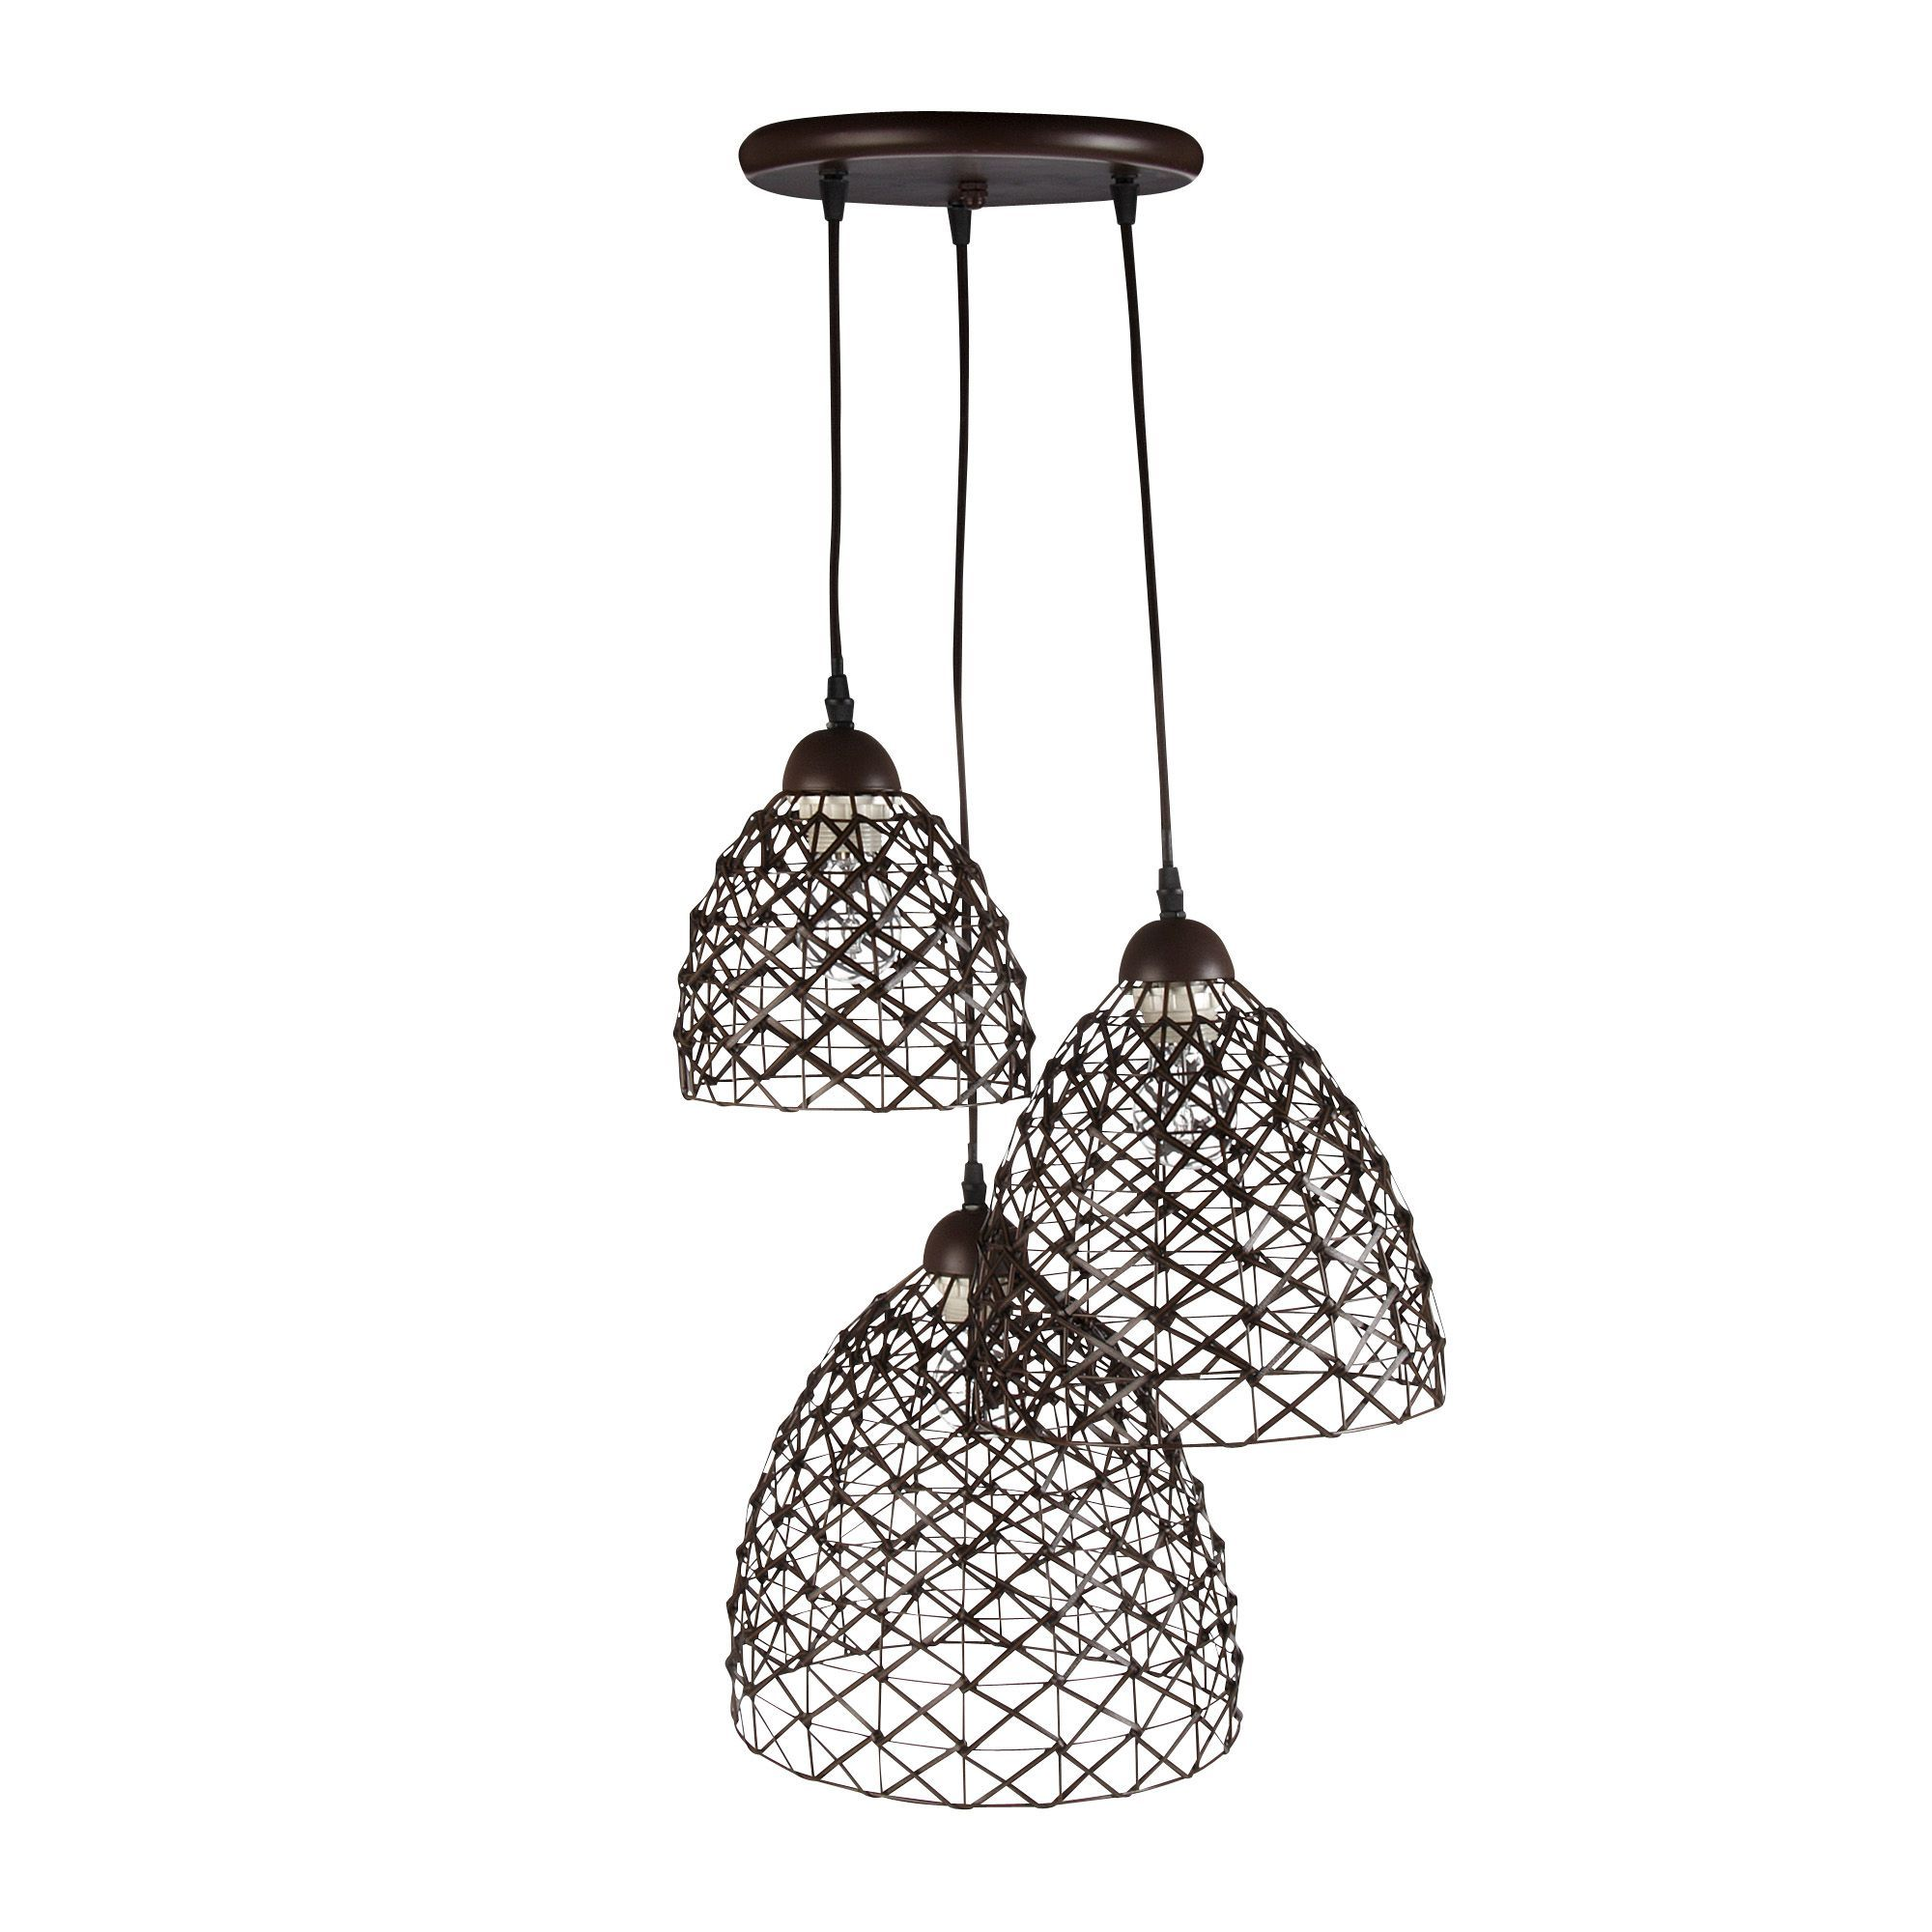 Suspension Luminaire Alinea Suspension 3 Lumières Chocolat Chocolat Naty Les